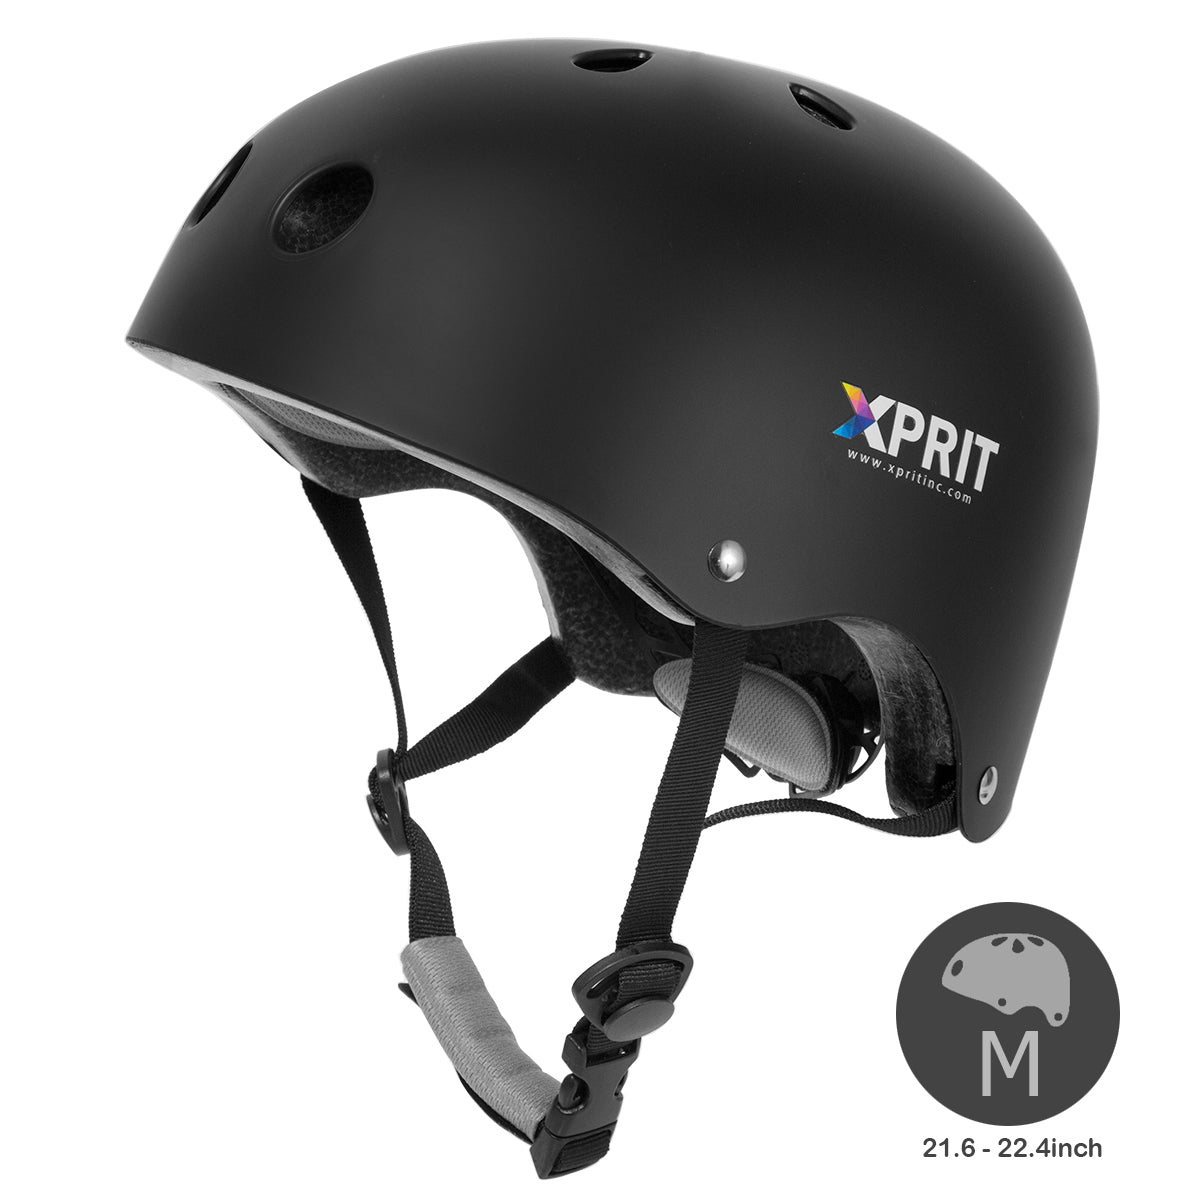 XPRIT Kids/Adults Protection Helmet For Scooter, Hoverboard, Skateboard and Bicycle. Black Medium